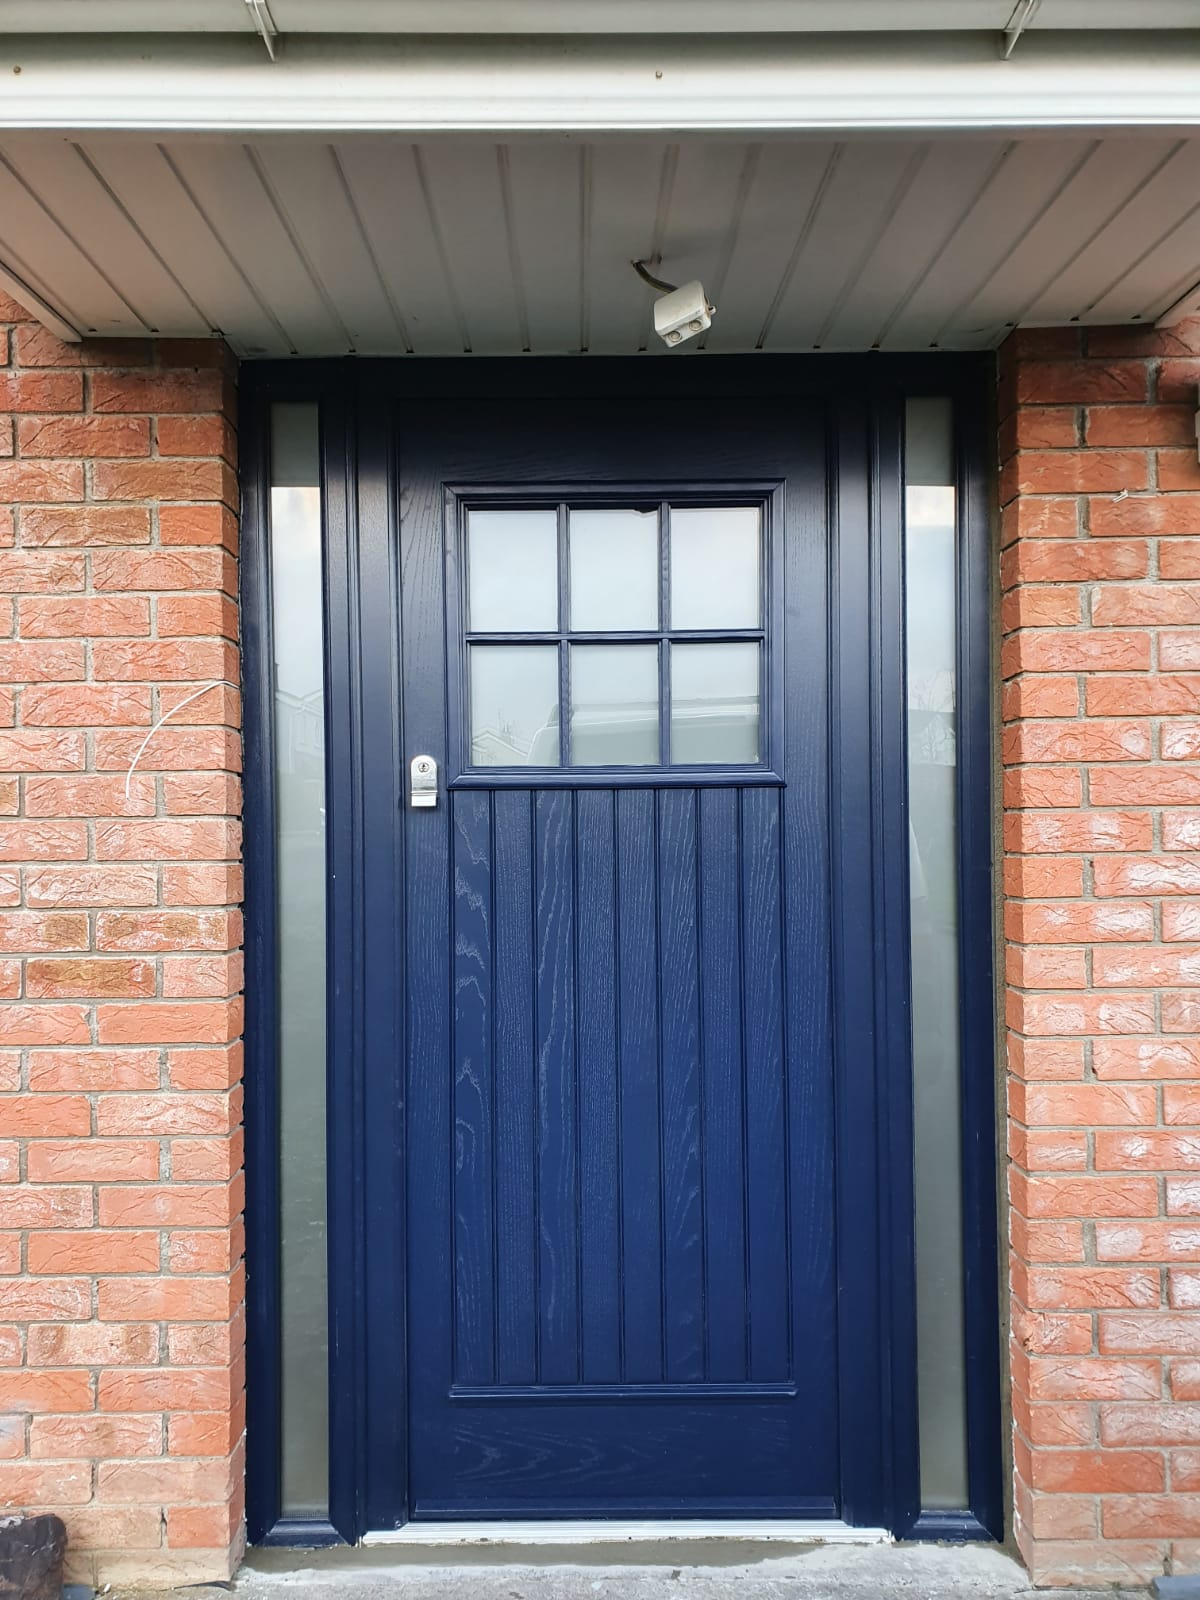 dublin Palladio composite door in blue with 2 side panels, finger-pull escutcheon, satinized glass